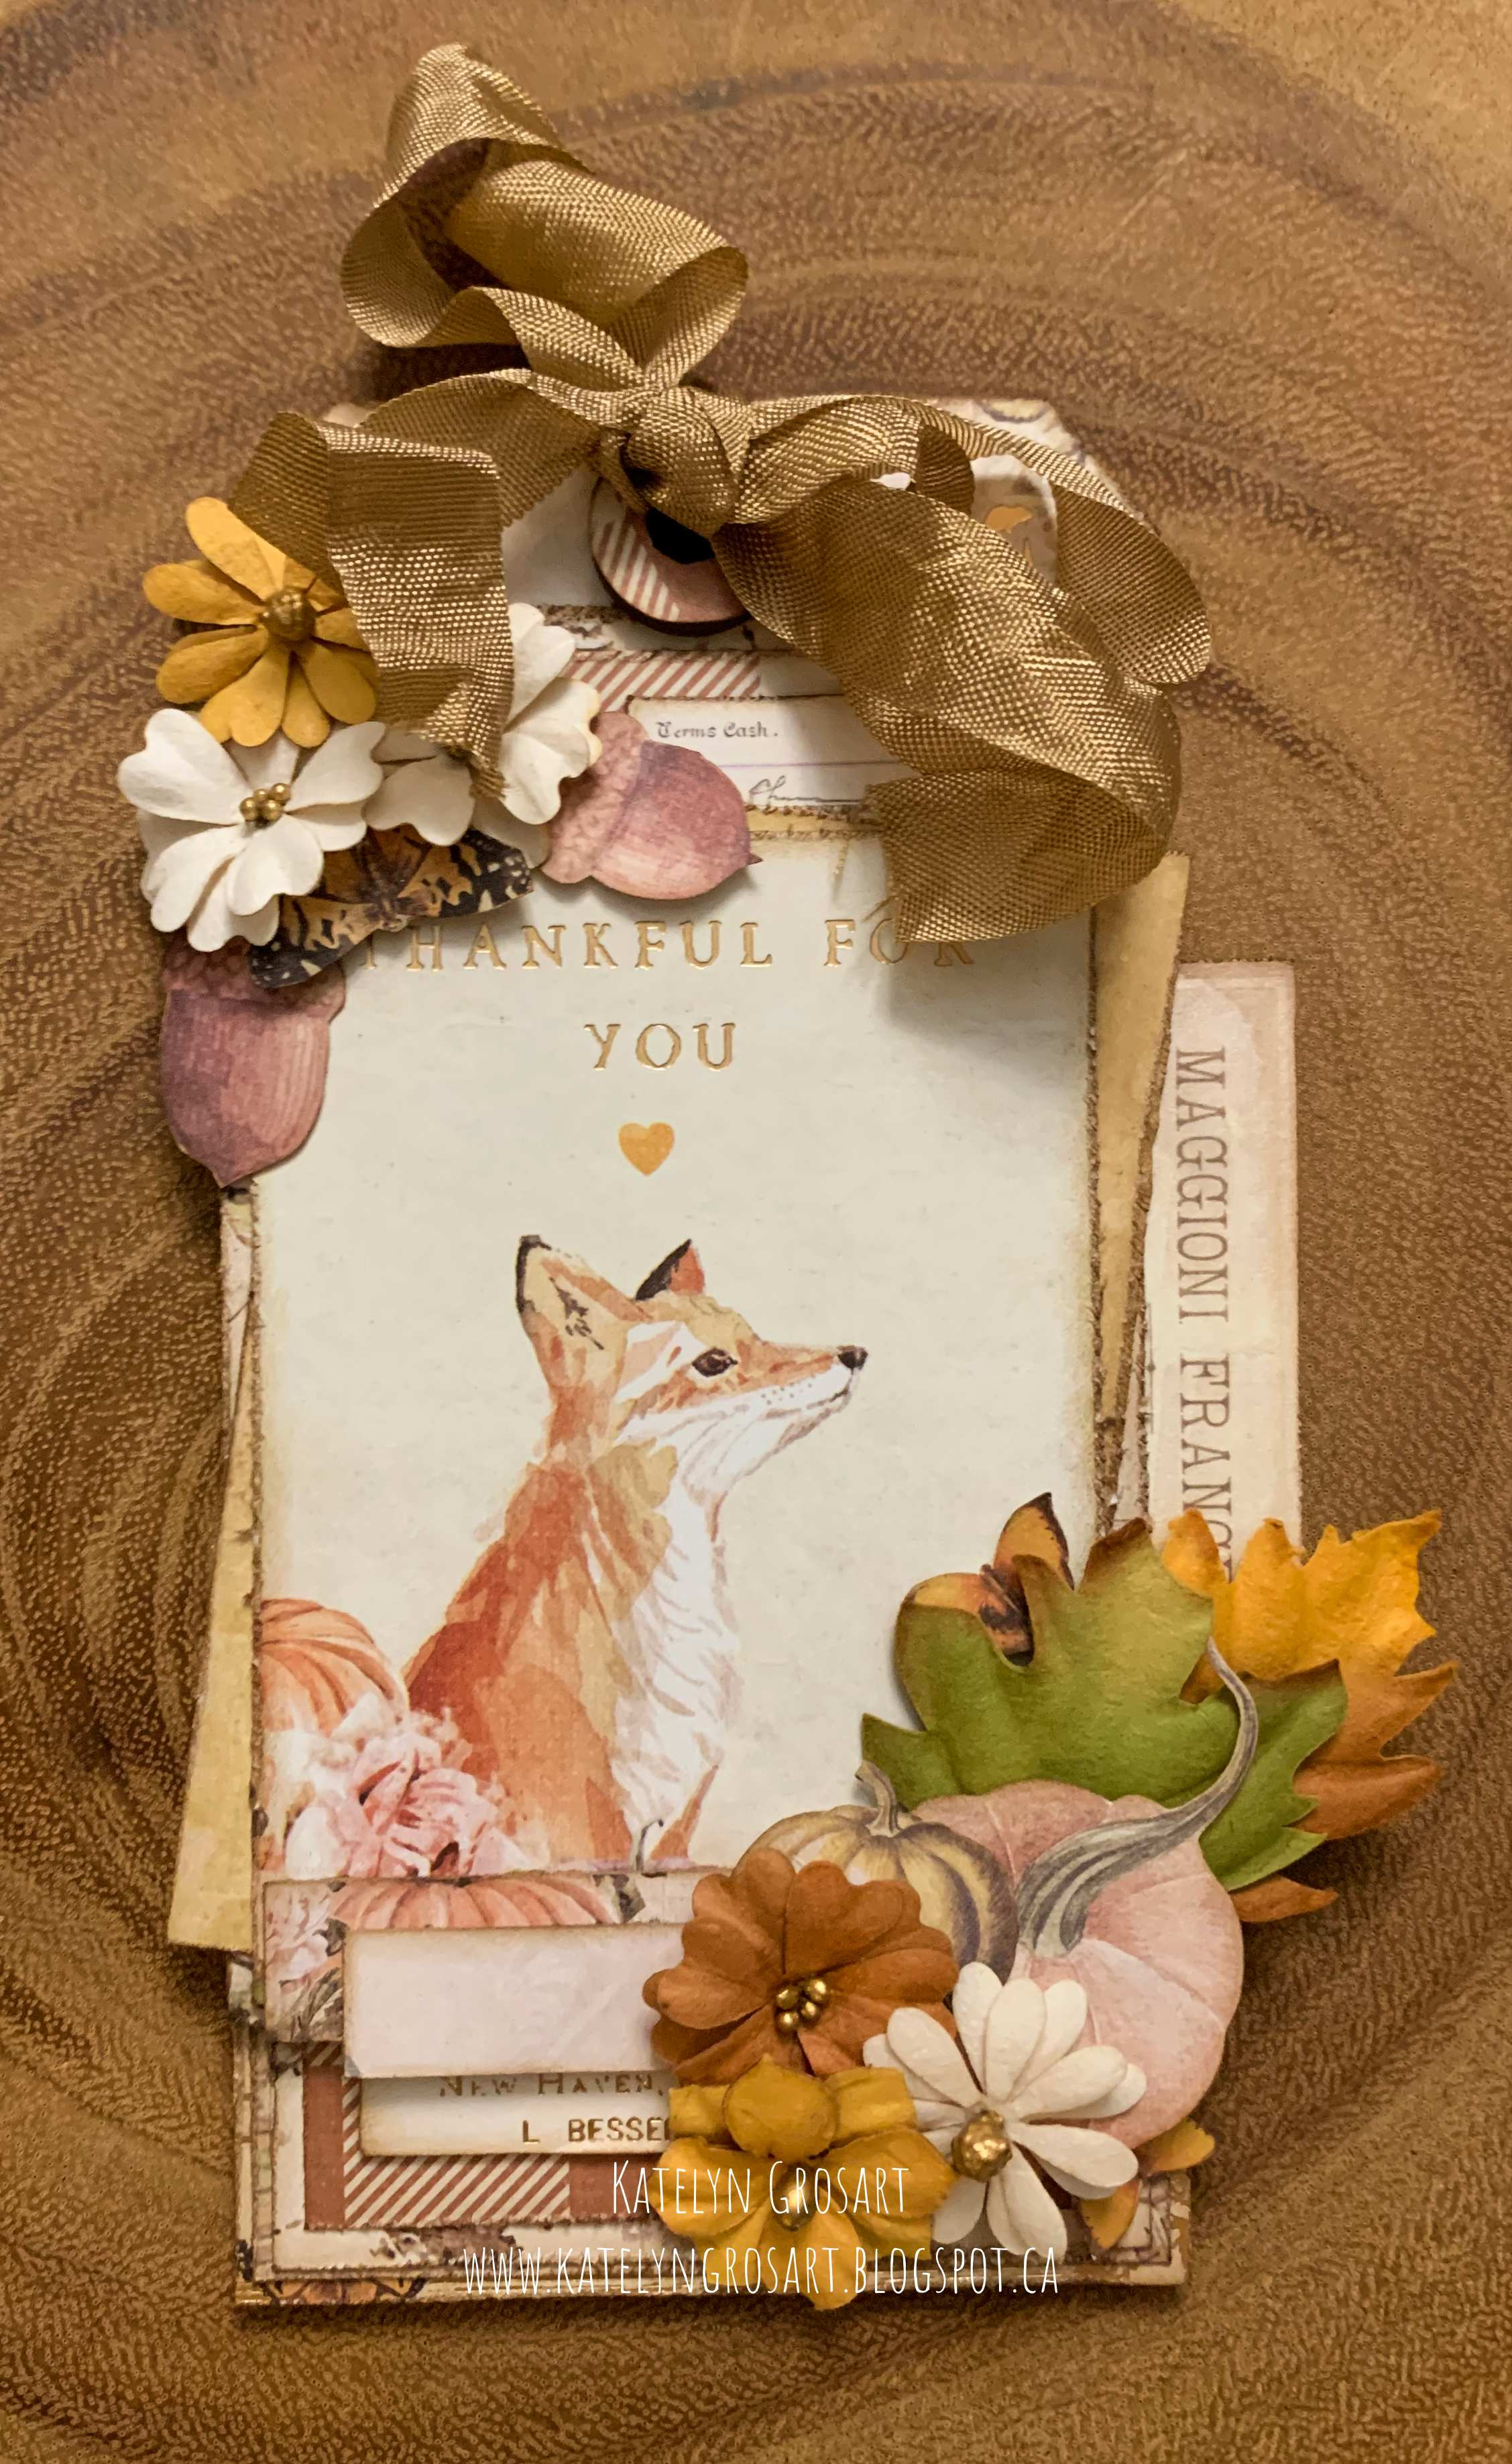 Vintage Thankful Tag for autumn scrapbooked with paper from Prima Marketing Autumn Sunset Collection with a happy fox on the front. Designed by Katelyn Grosart